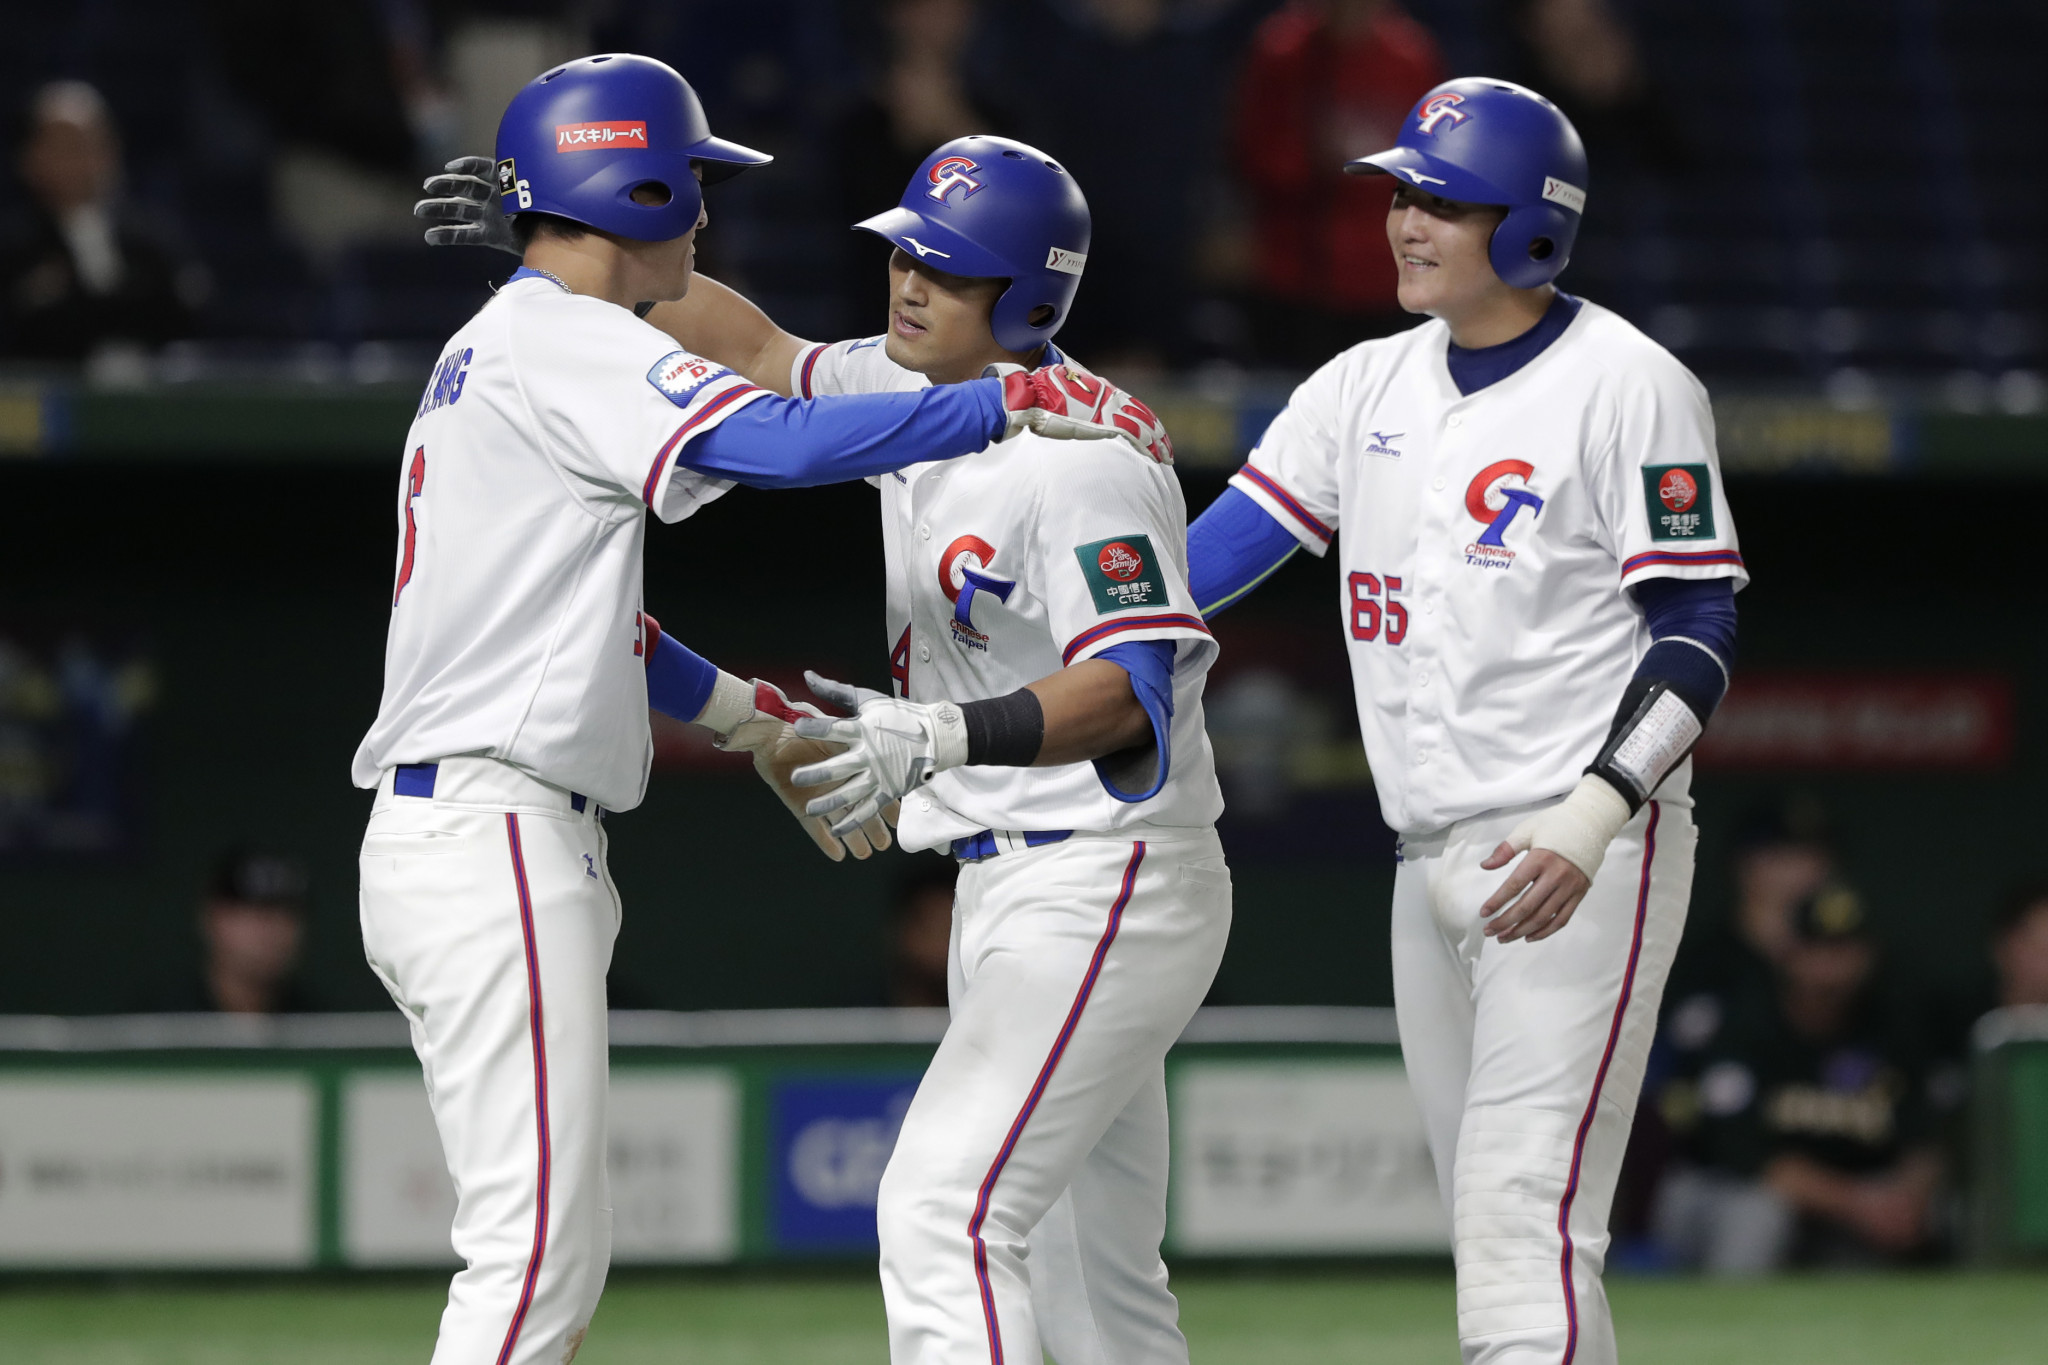 Chinese Taipei will host the Asian Baseball Championships in December ©Getty Images